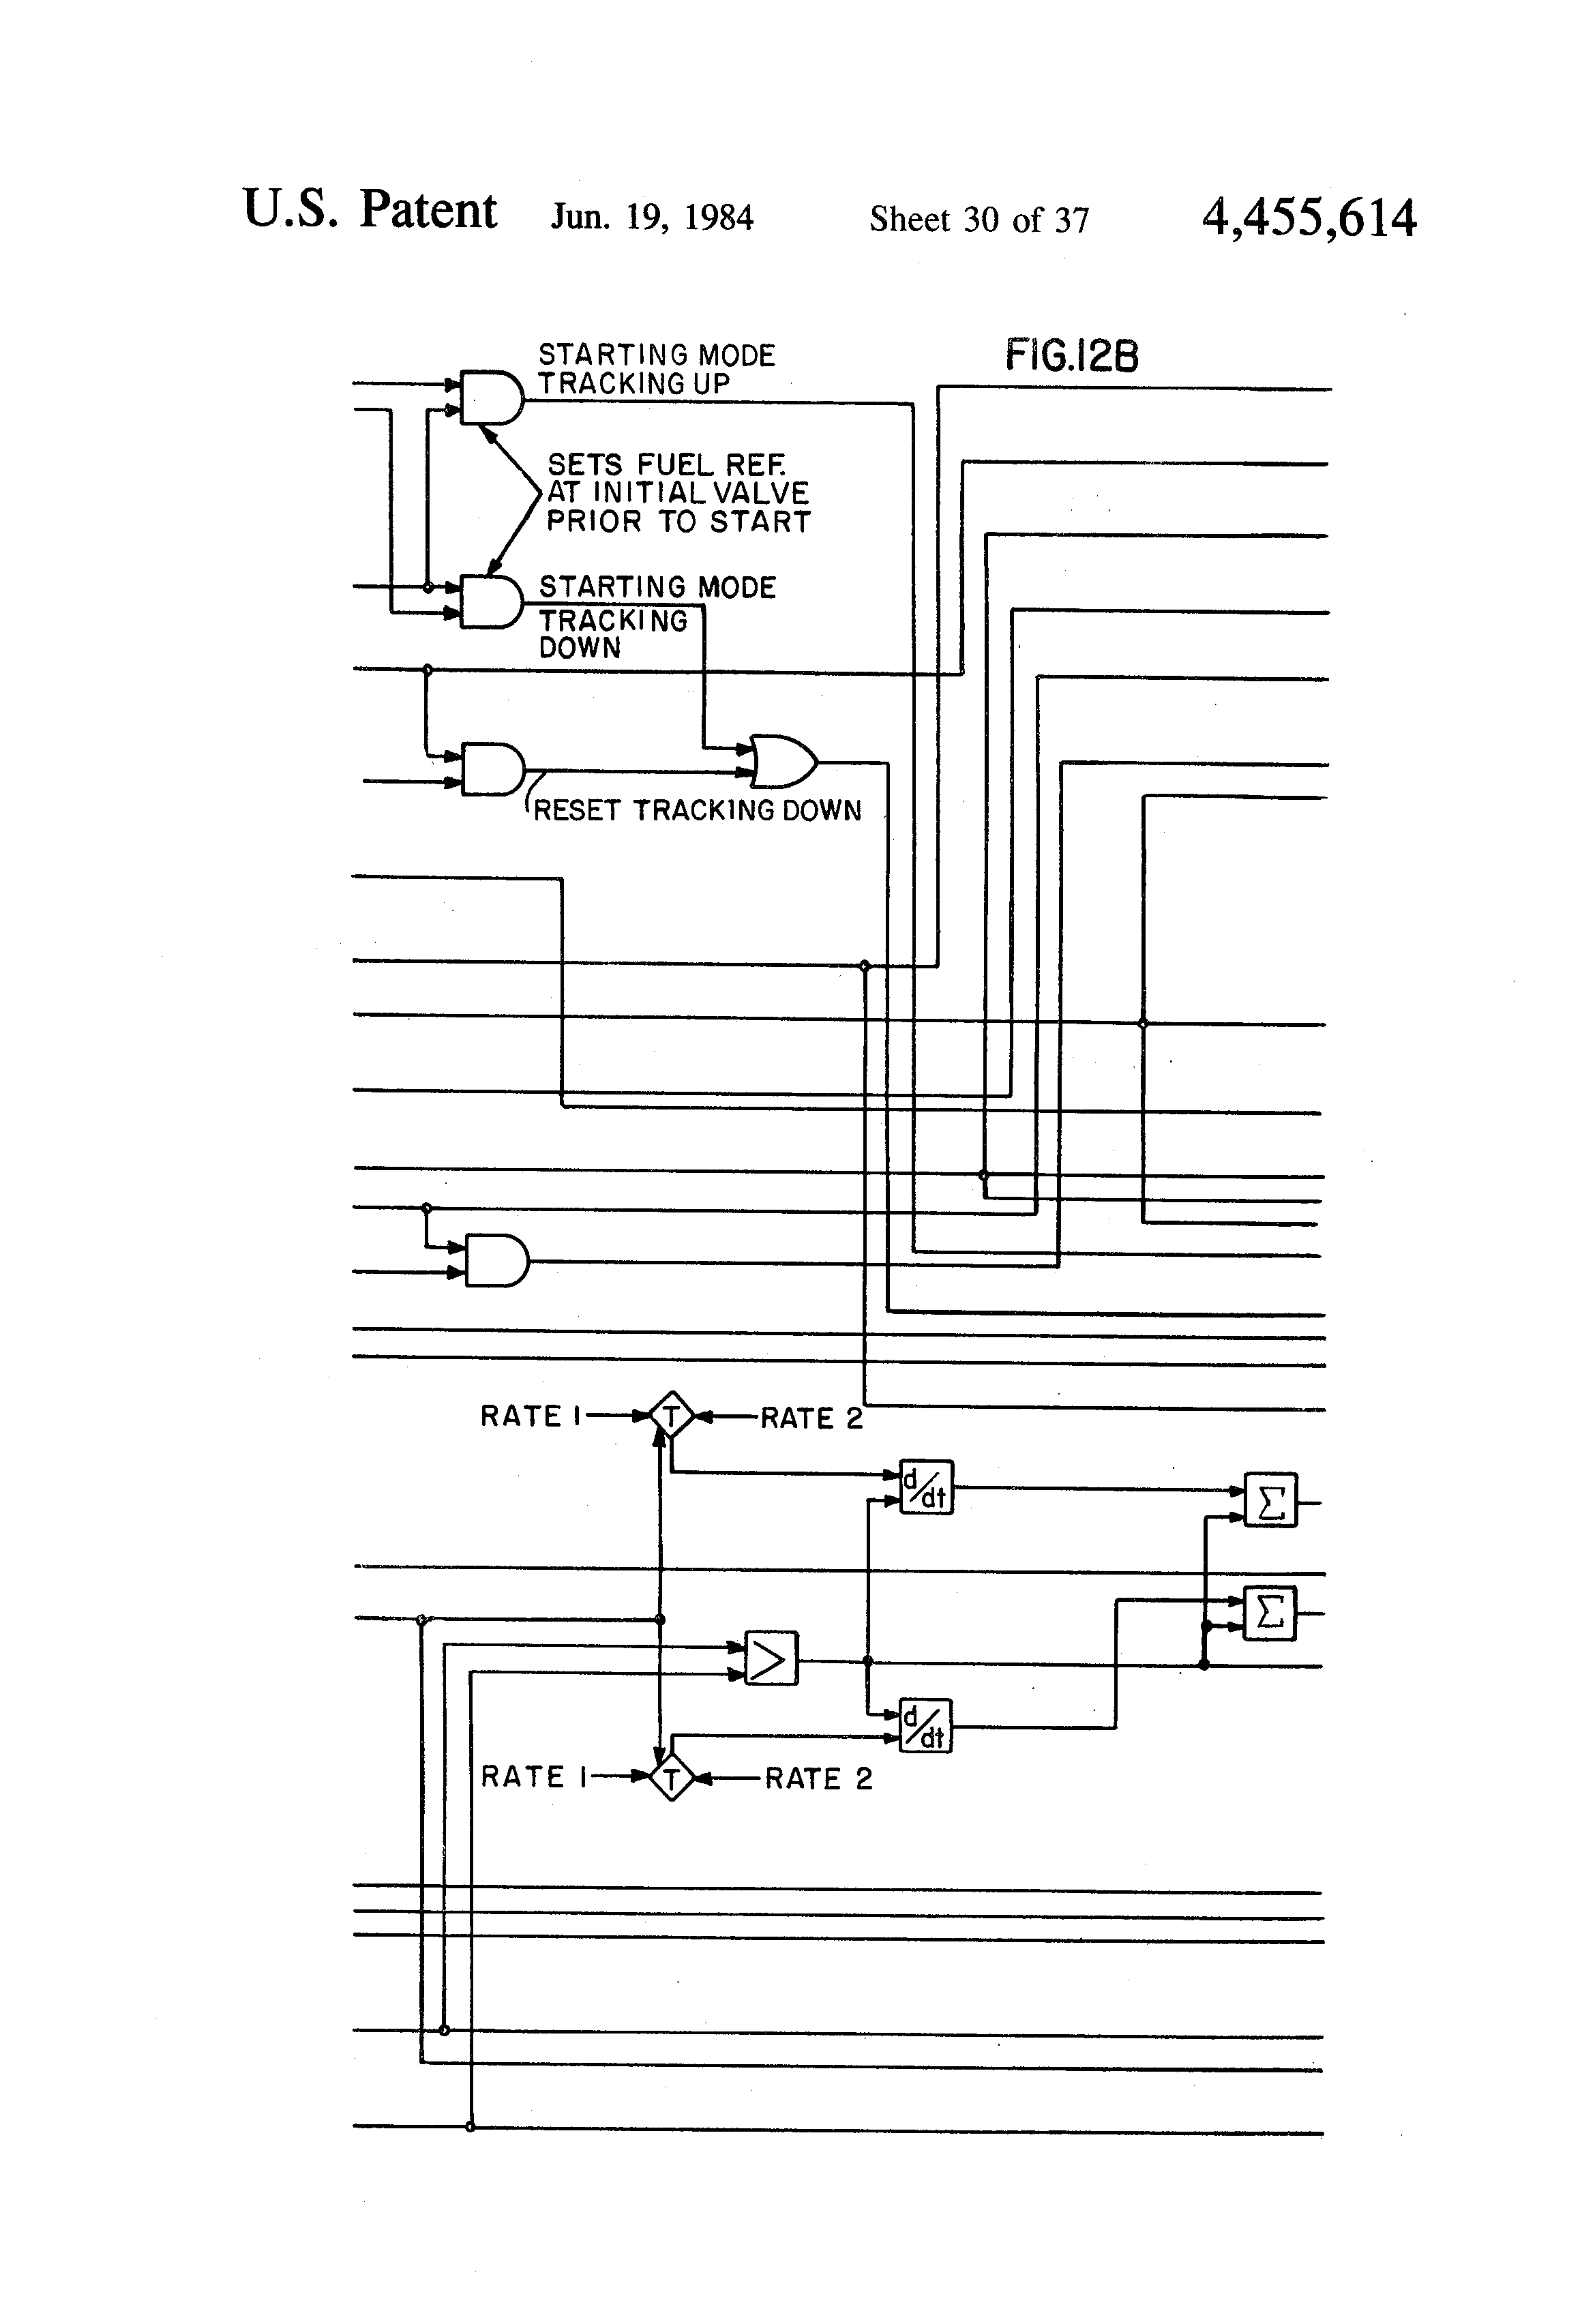 1987 Pace Arrow Wiring Diagram. Diagram. Auto Wiring Diagram